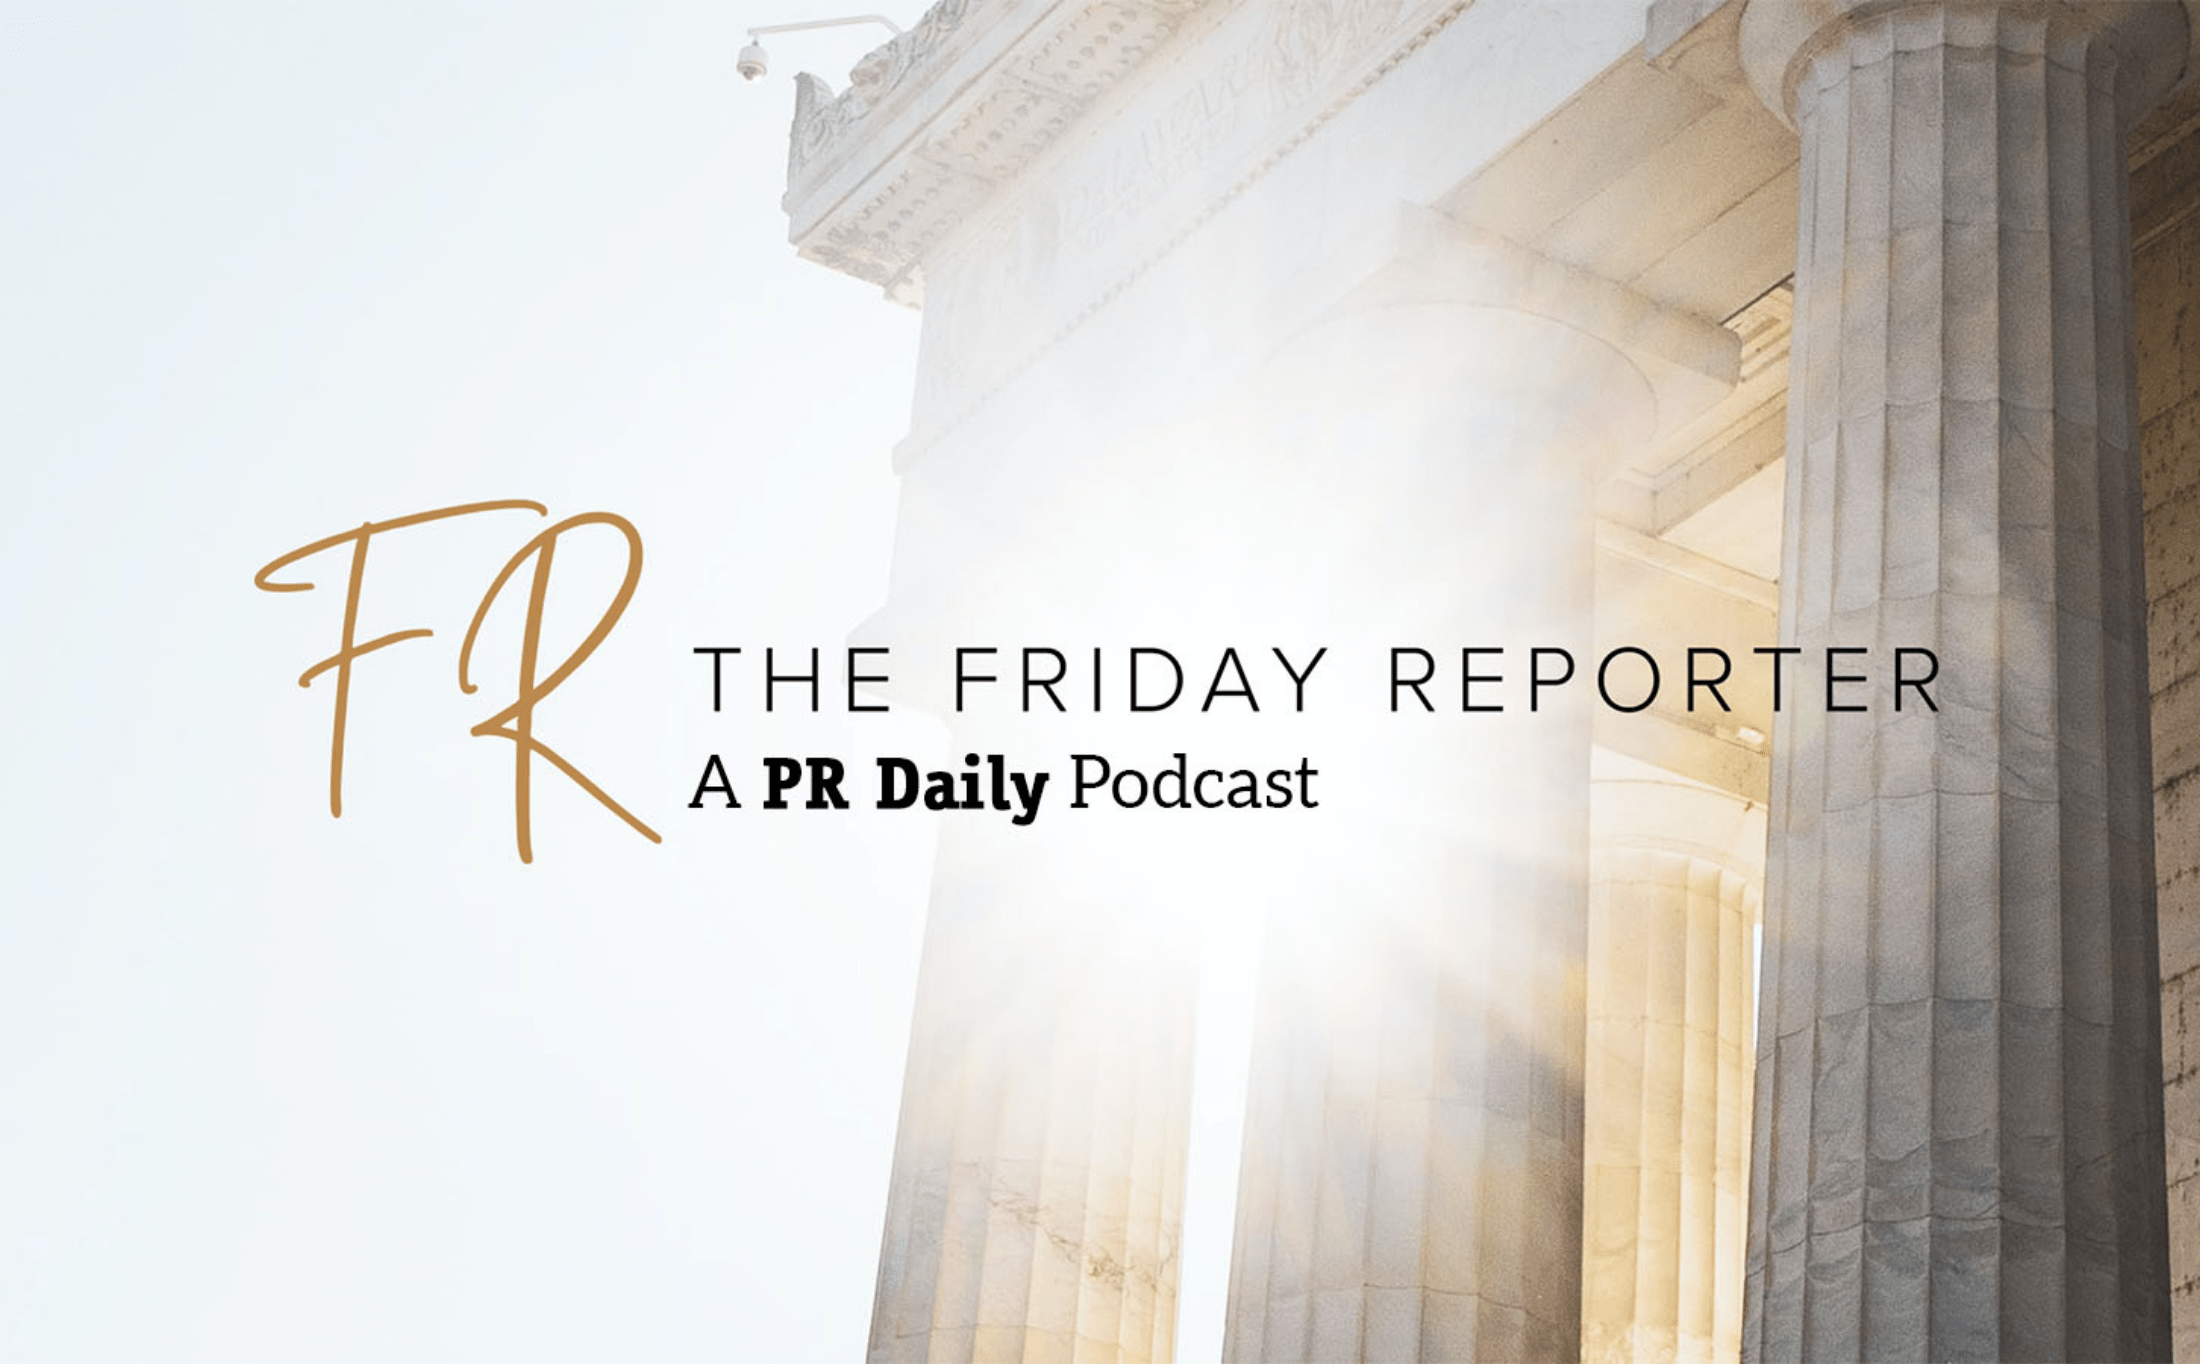 The Friday Reporter